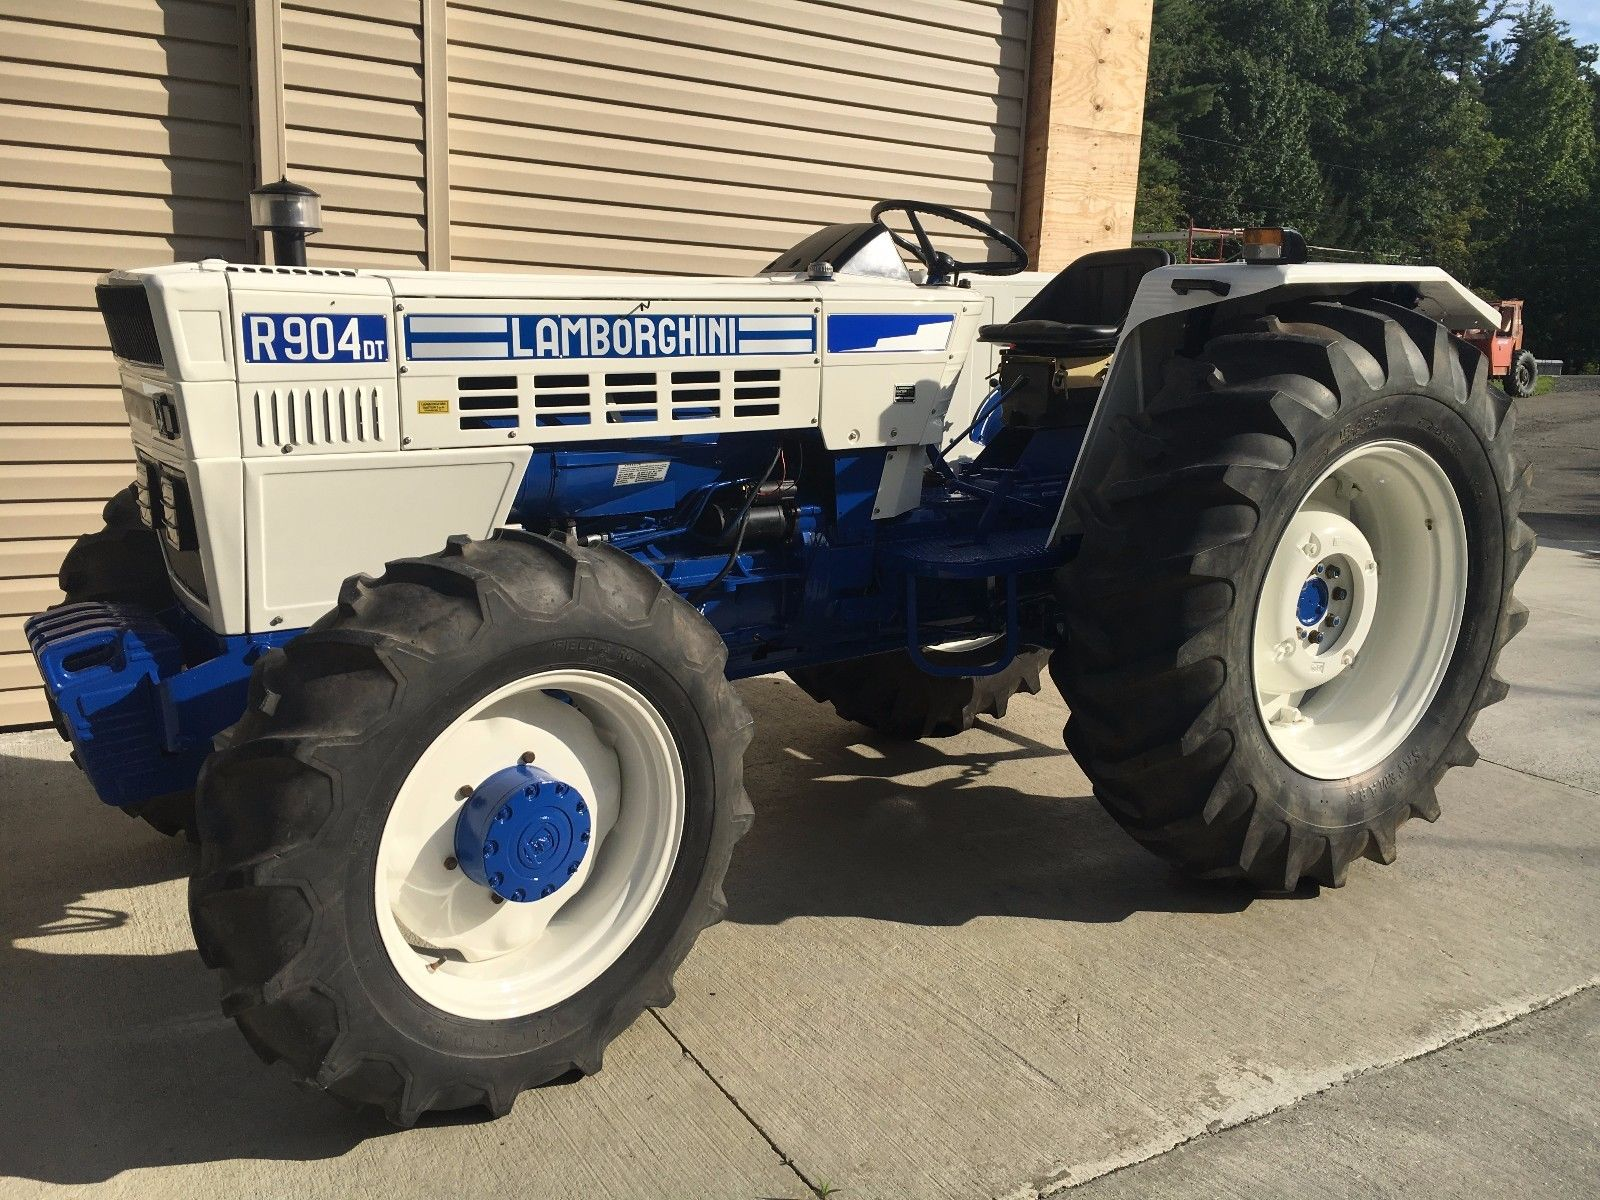 1972 Lamborghini R904dt Tractor Hollywood Wheels Auction Shows